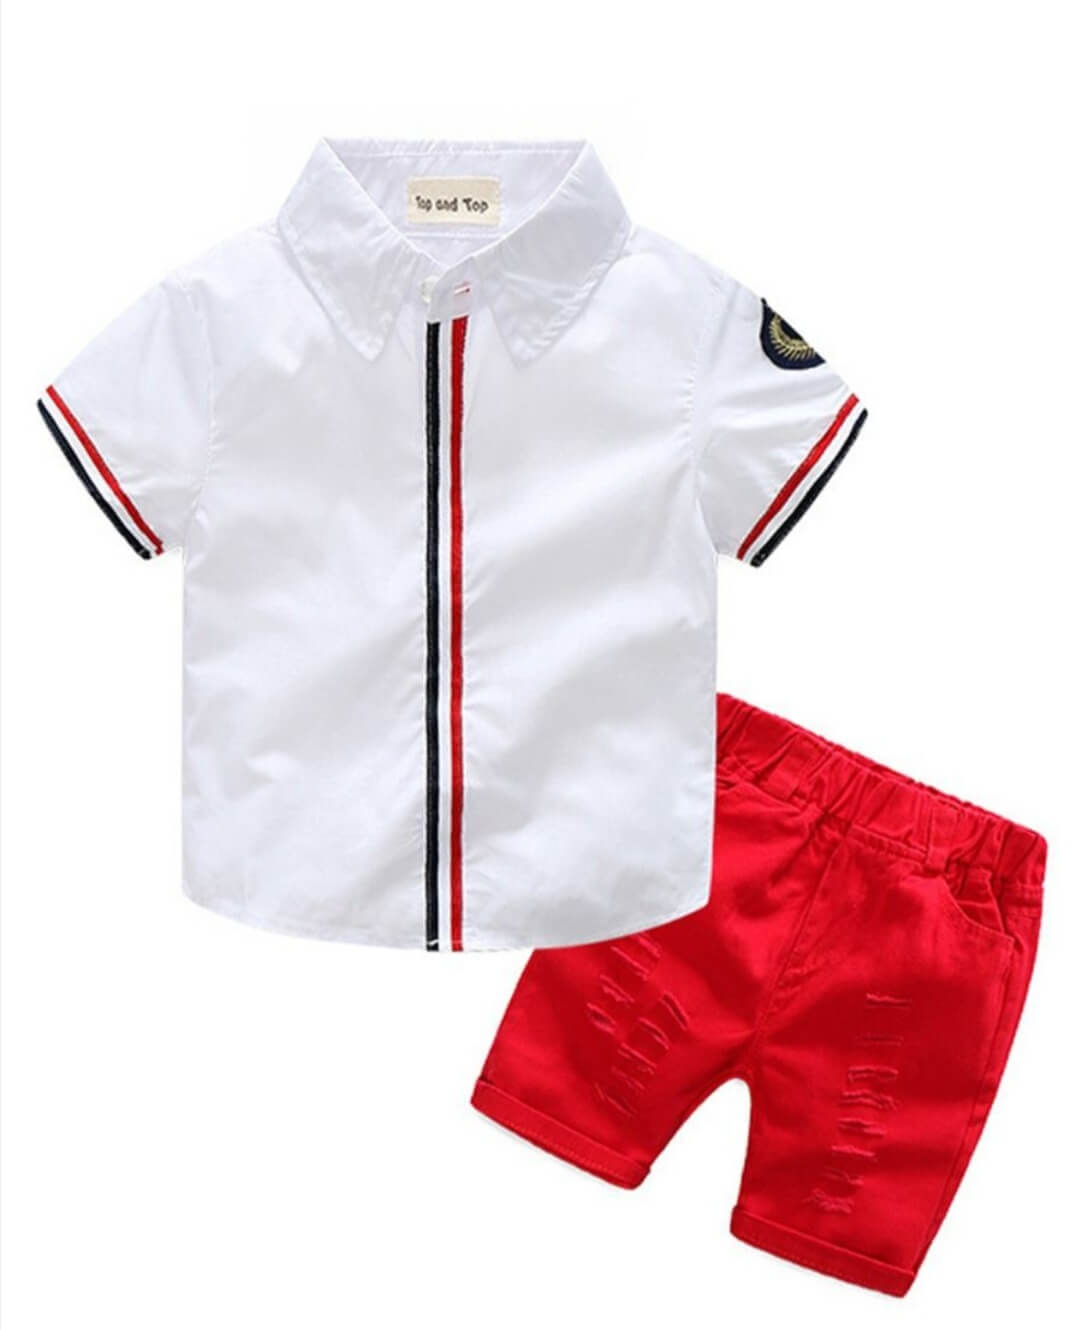 2 piece summer toddler outfit for 4 to 5 years